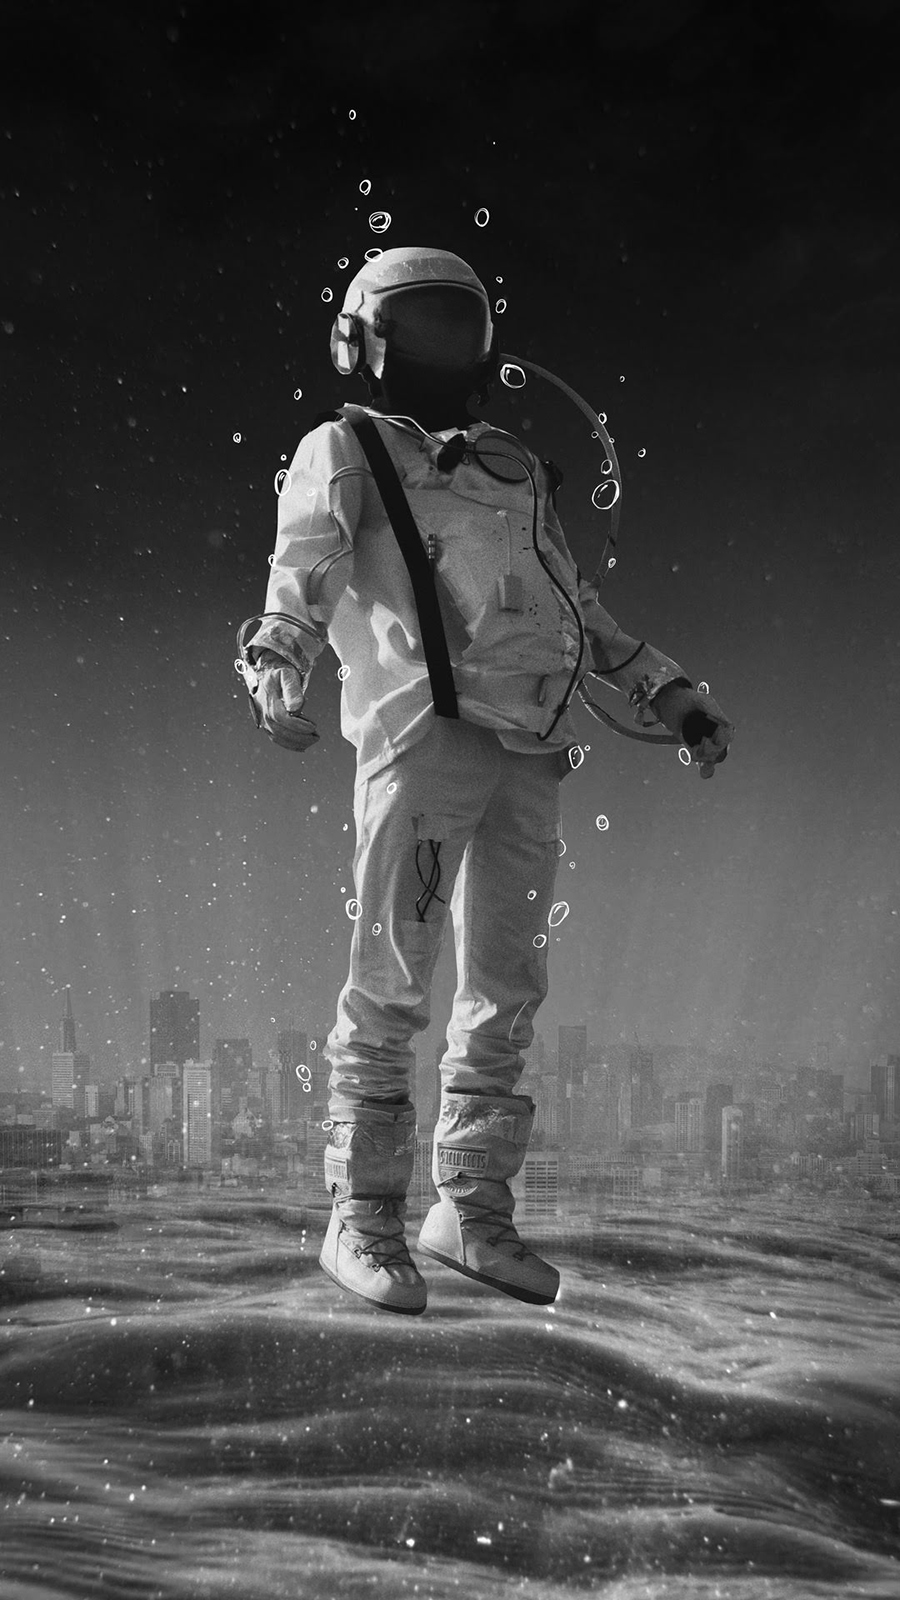 Astronaut Wallpapers Free Download